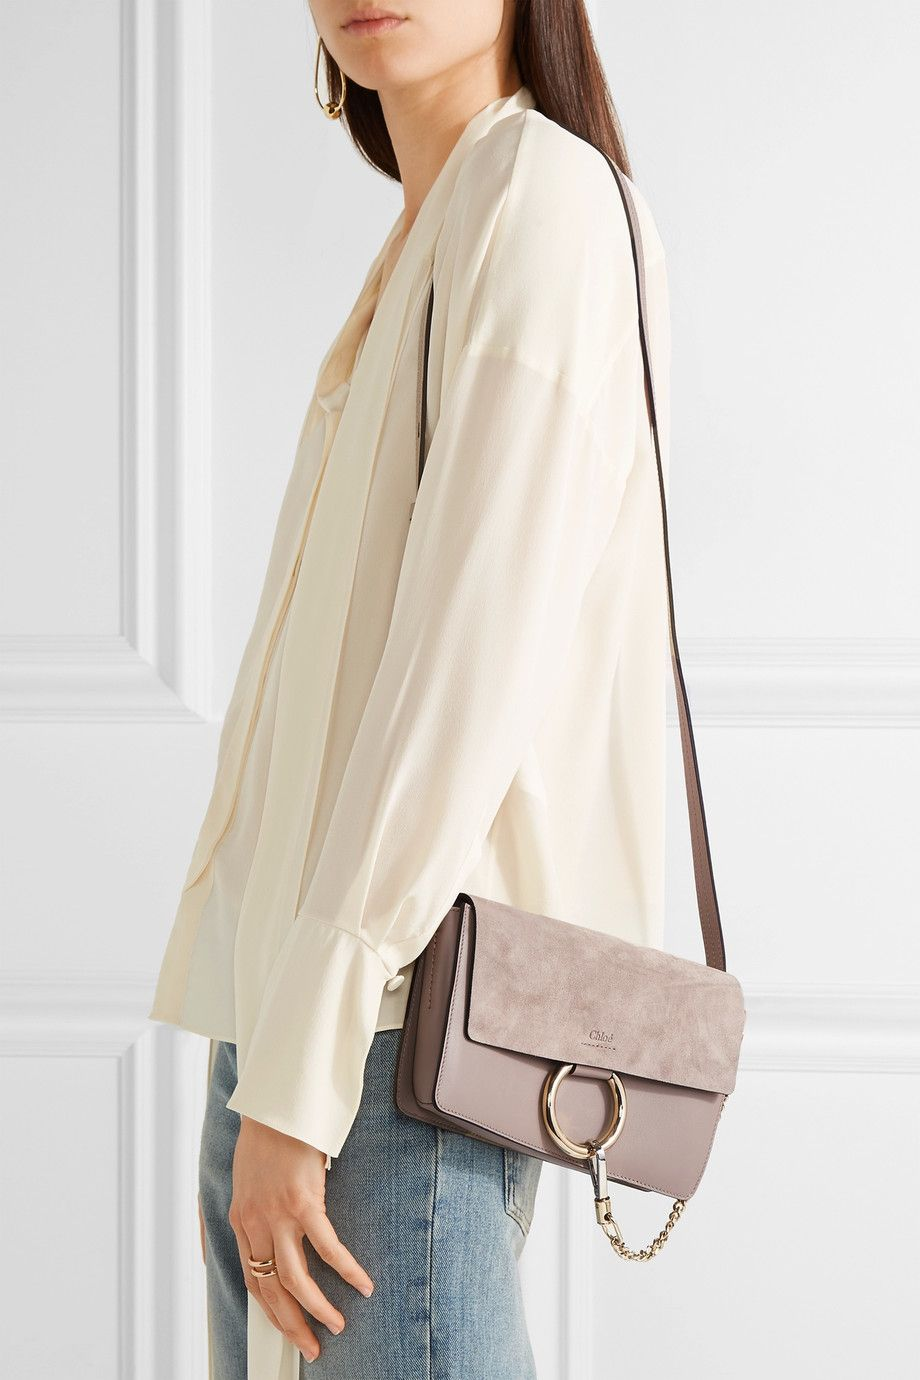 919ee37c Chloé - Faye small leather and suede shoulder bag | bags | Faye bag ...